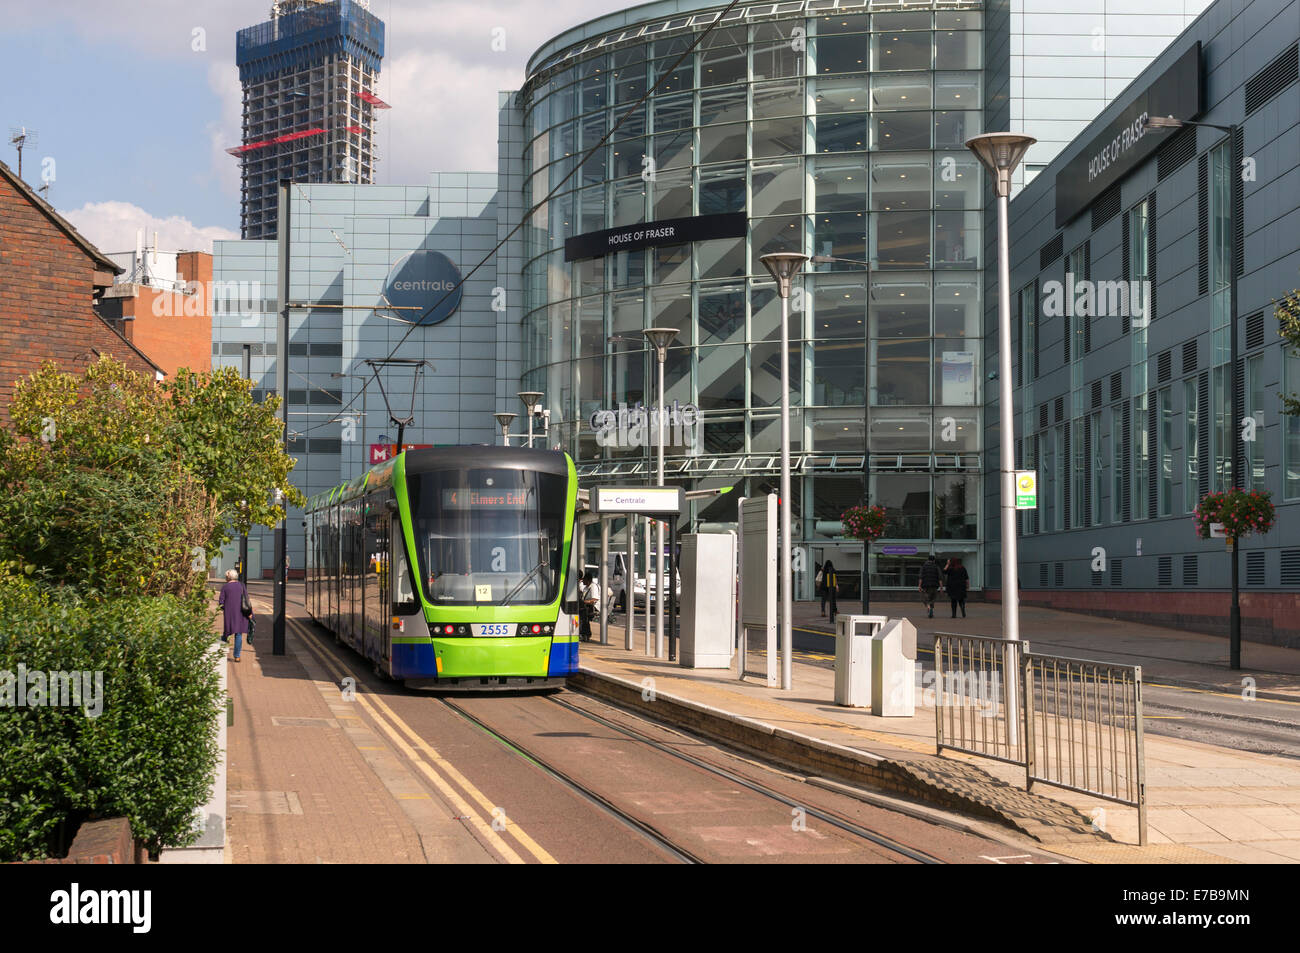 Croydon tram outside Centrale - Stock Image